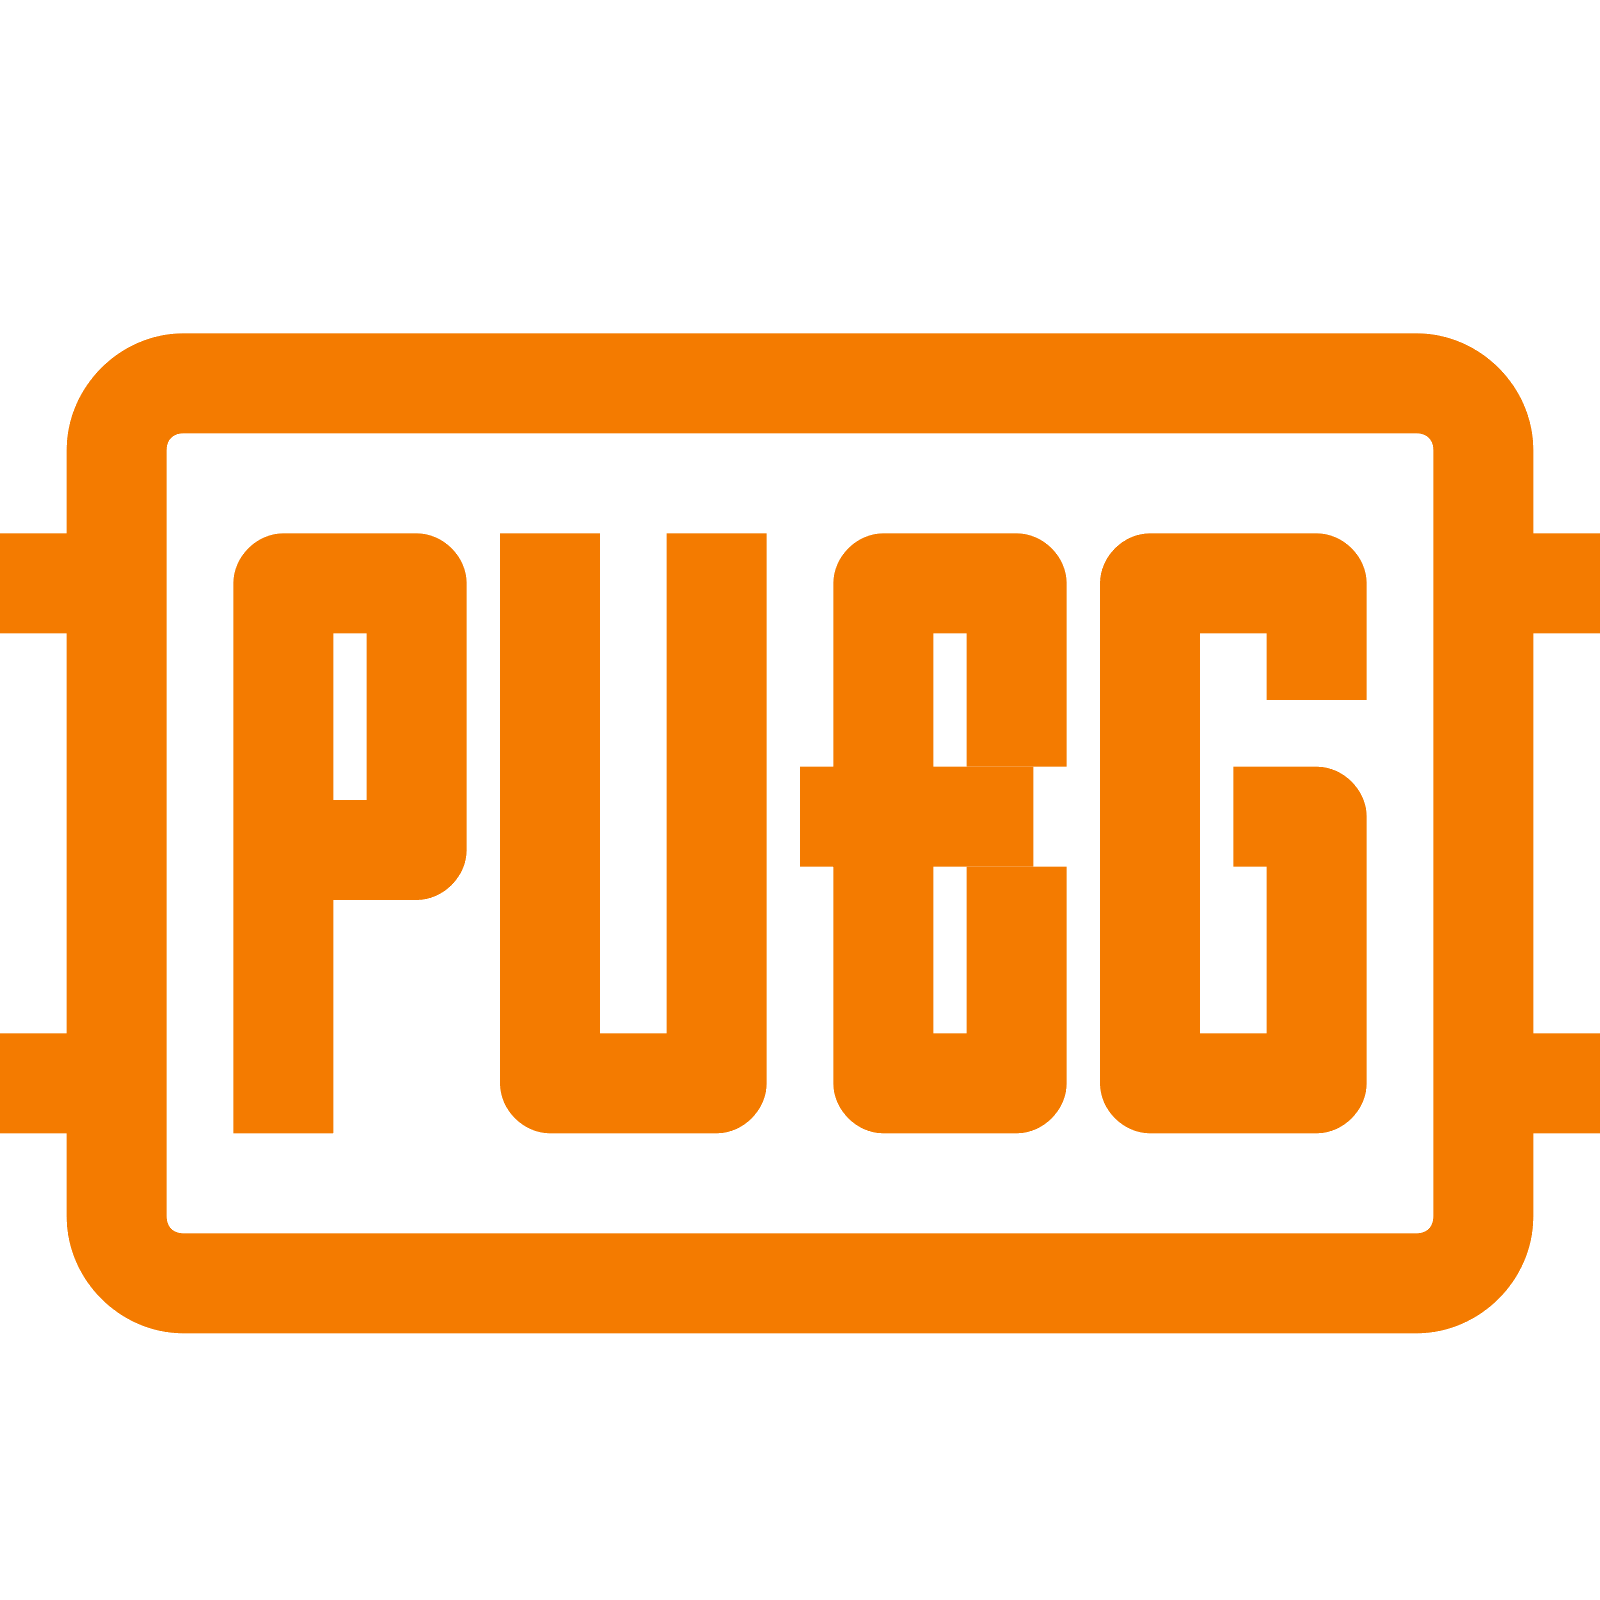 Pubg logo png. Icon free download and